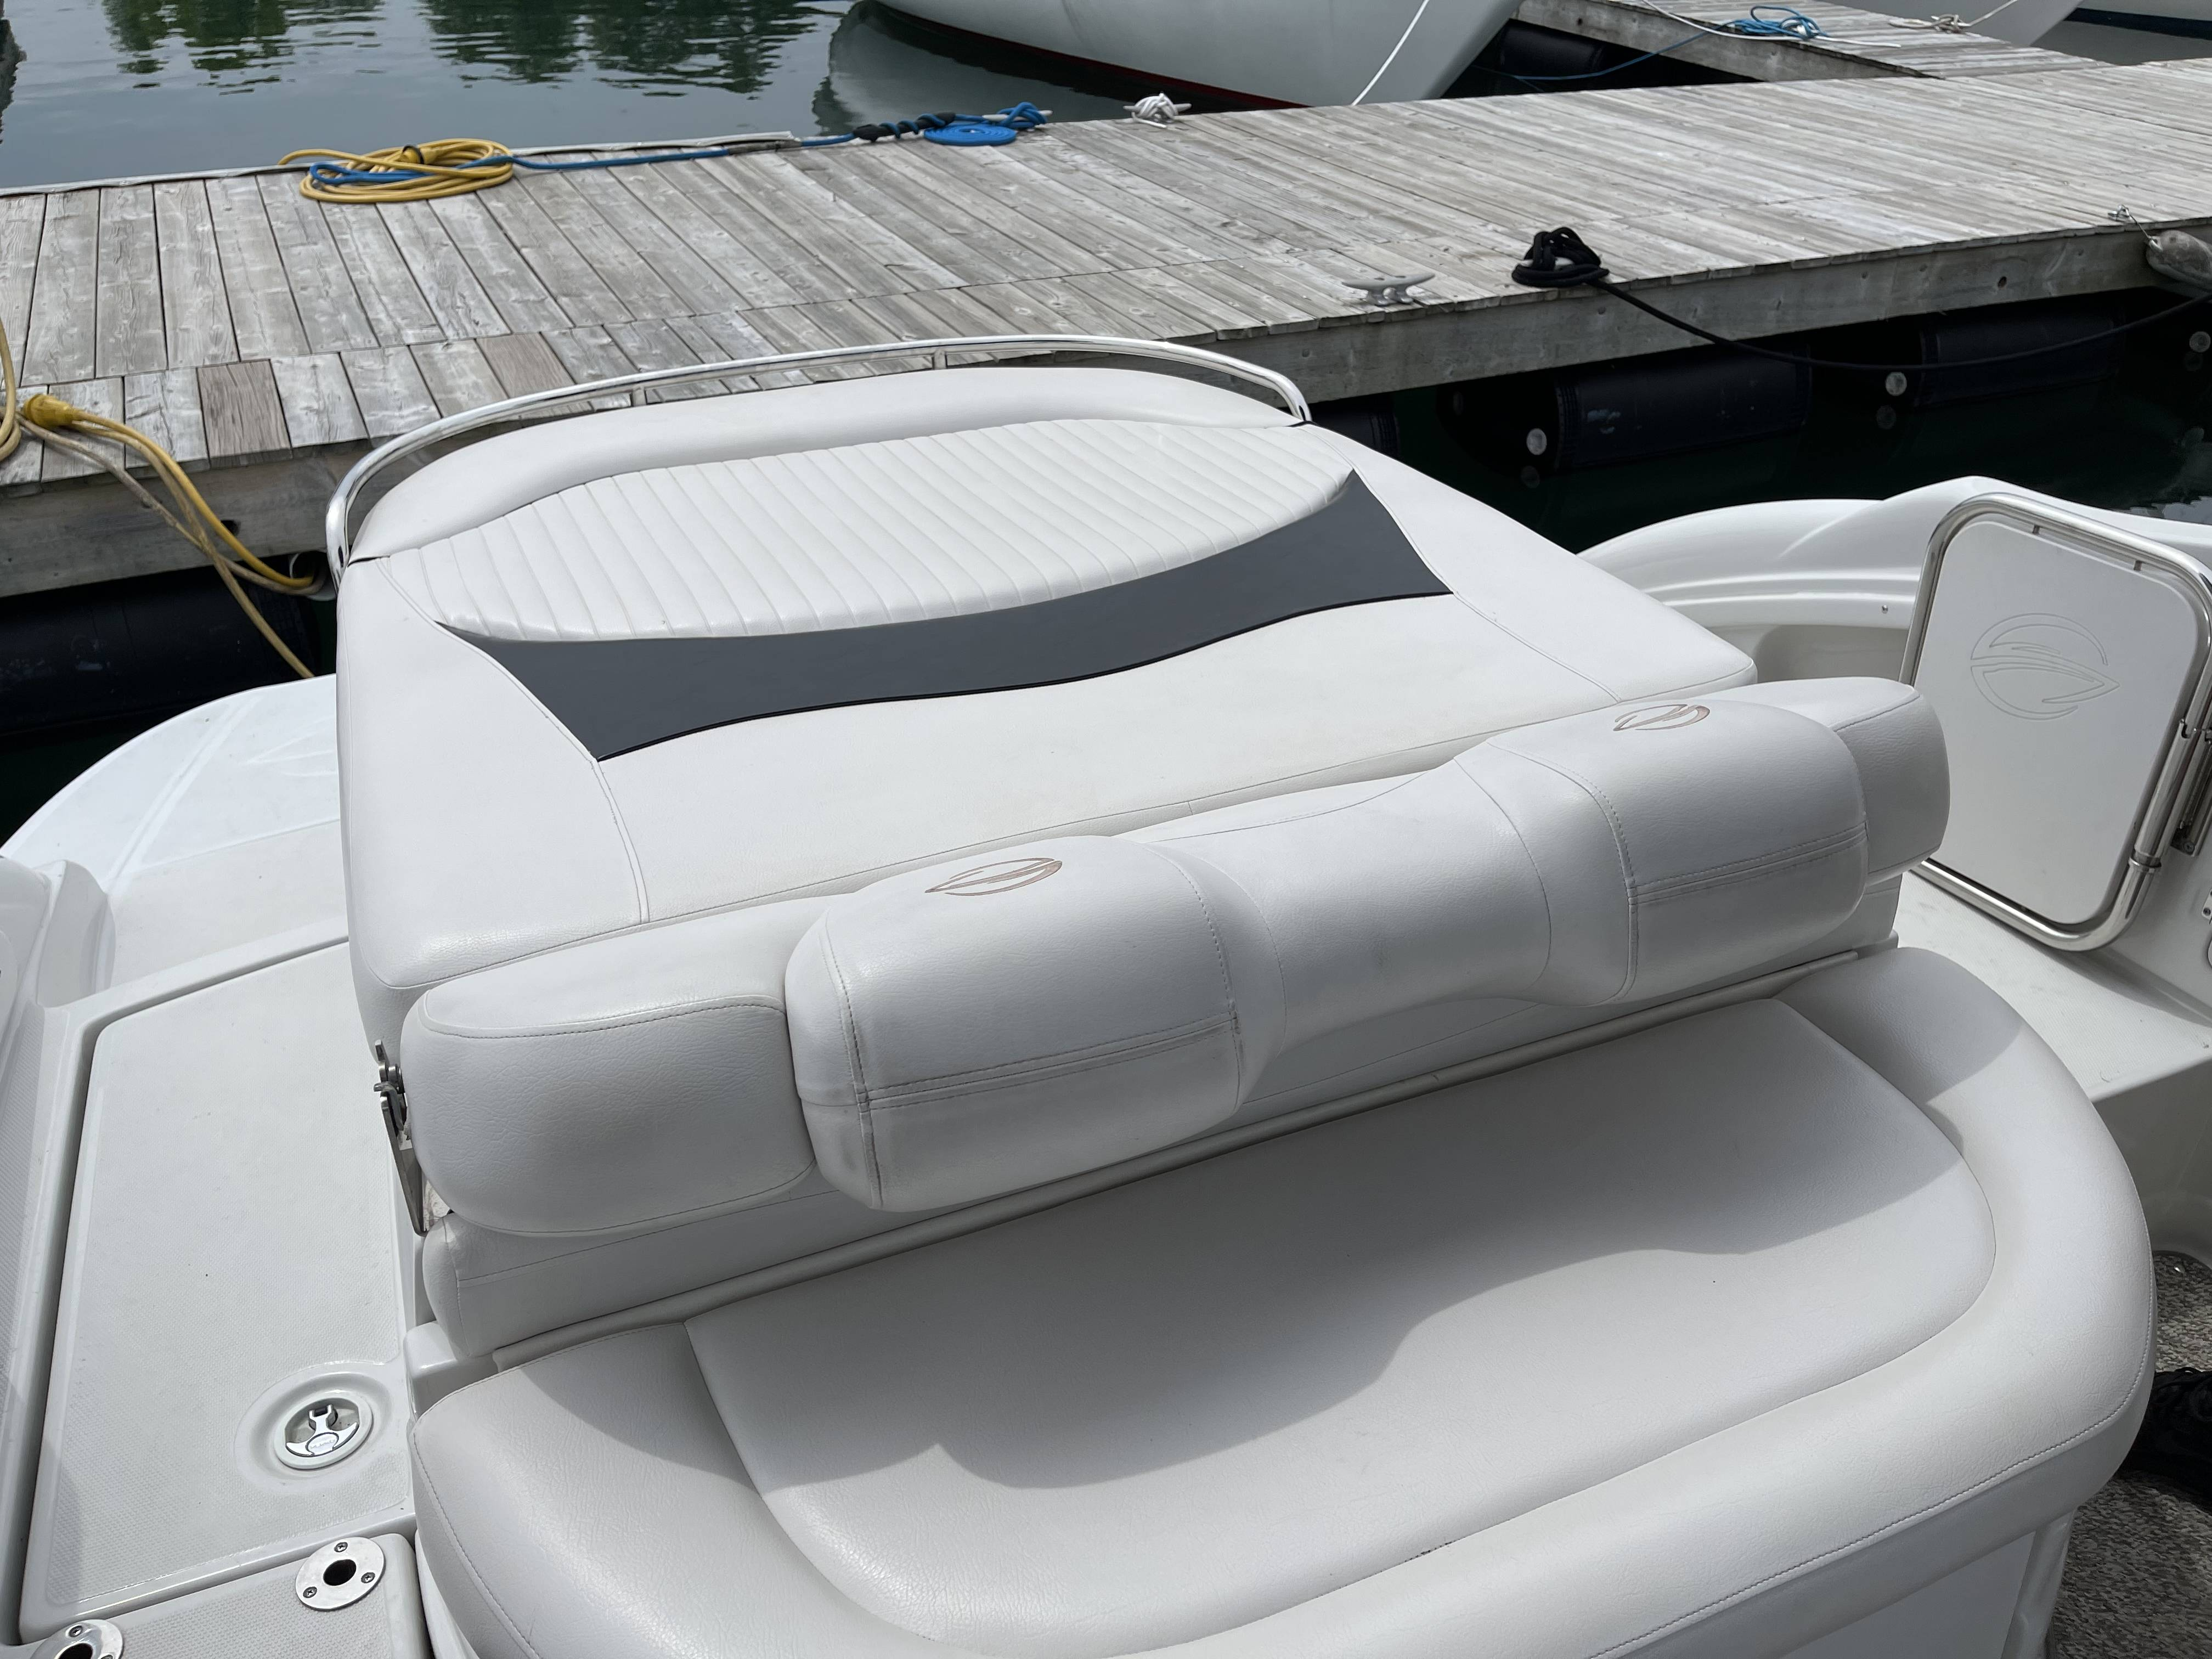 2011 Crownline boat for sale, model of the boat is 320 LS & Image # 30 of 55